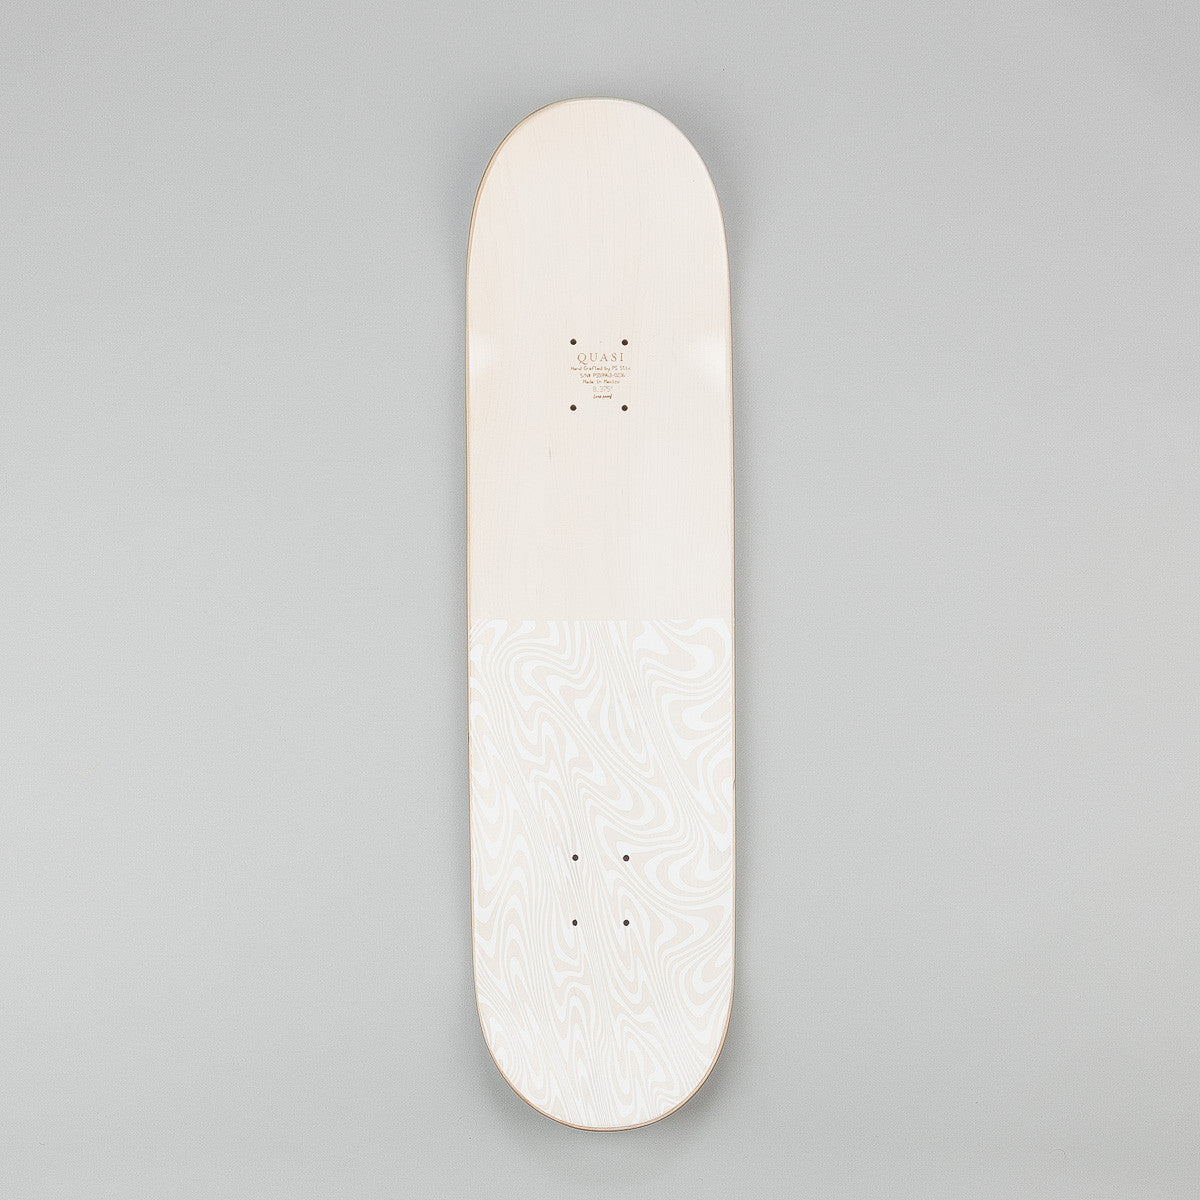 Quasi Skateboards Dior Deck - Whitewash 8.125""